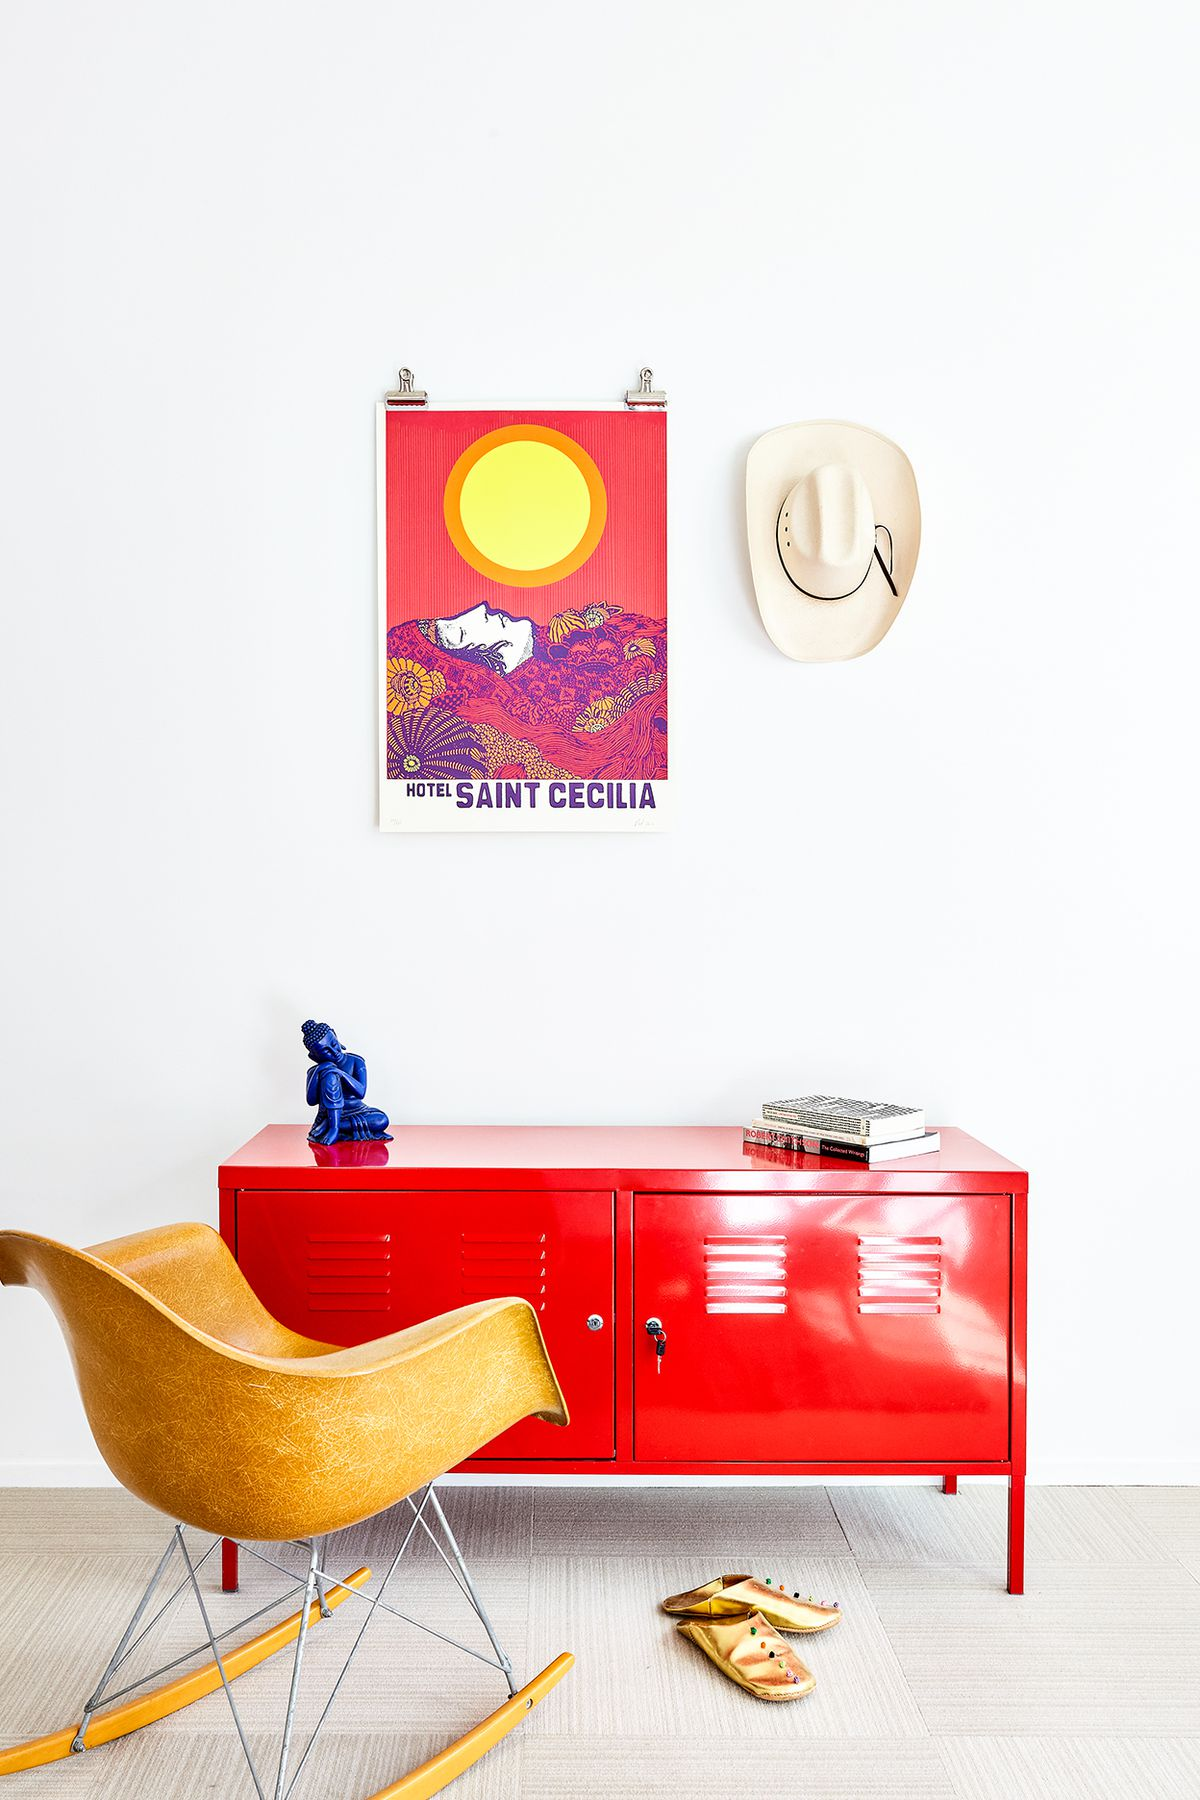 A bright red metal cabinet sits against a painted white wall. There is a brown chair next to it along with slippers. On the wall hangs a colorful art print and a cowboy hat.